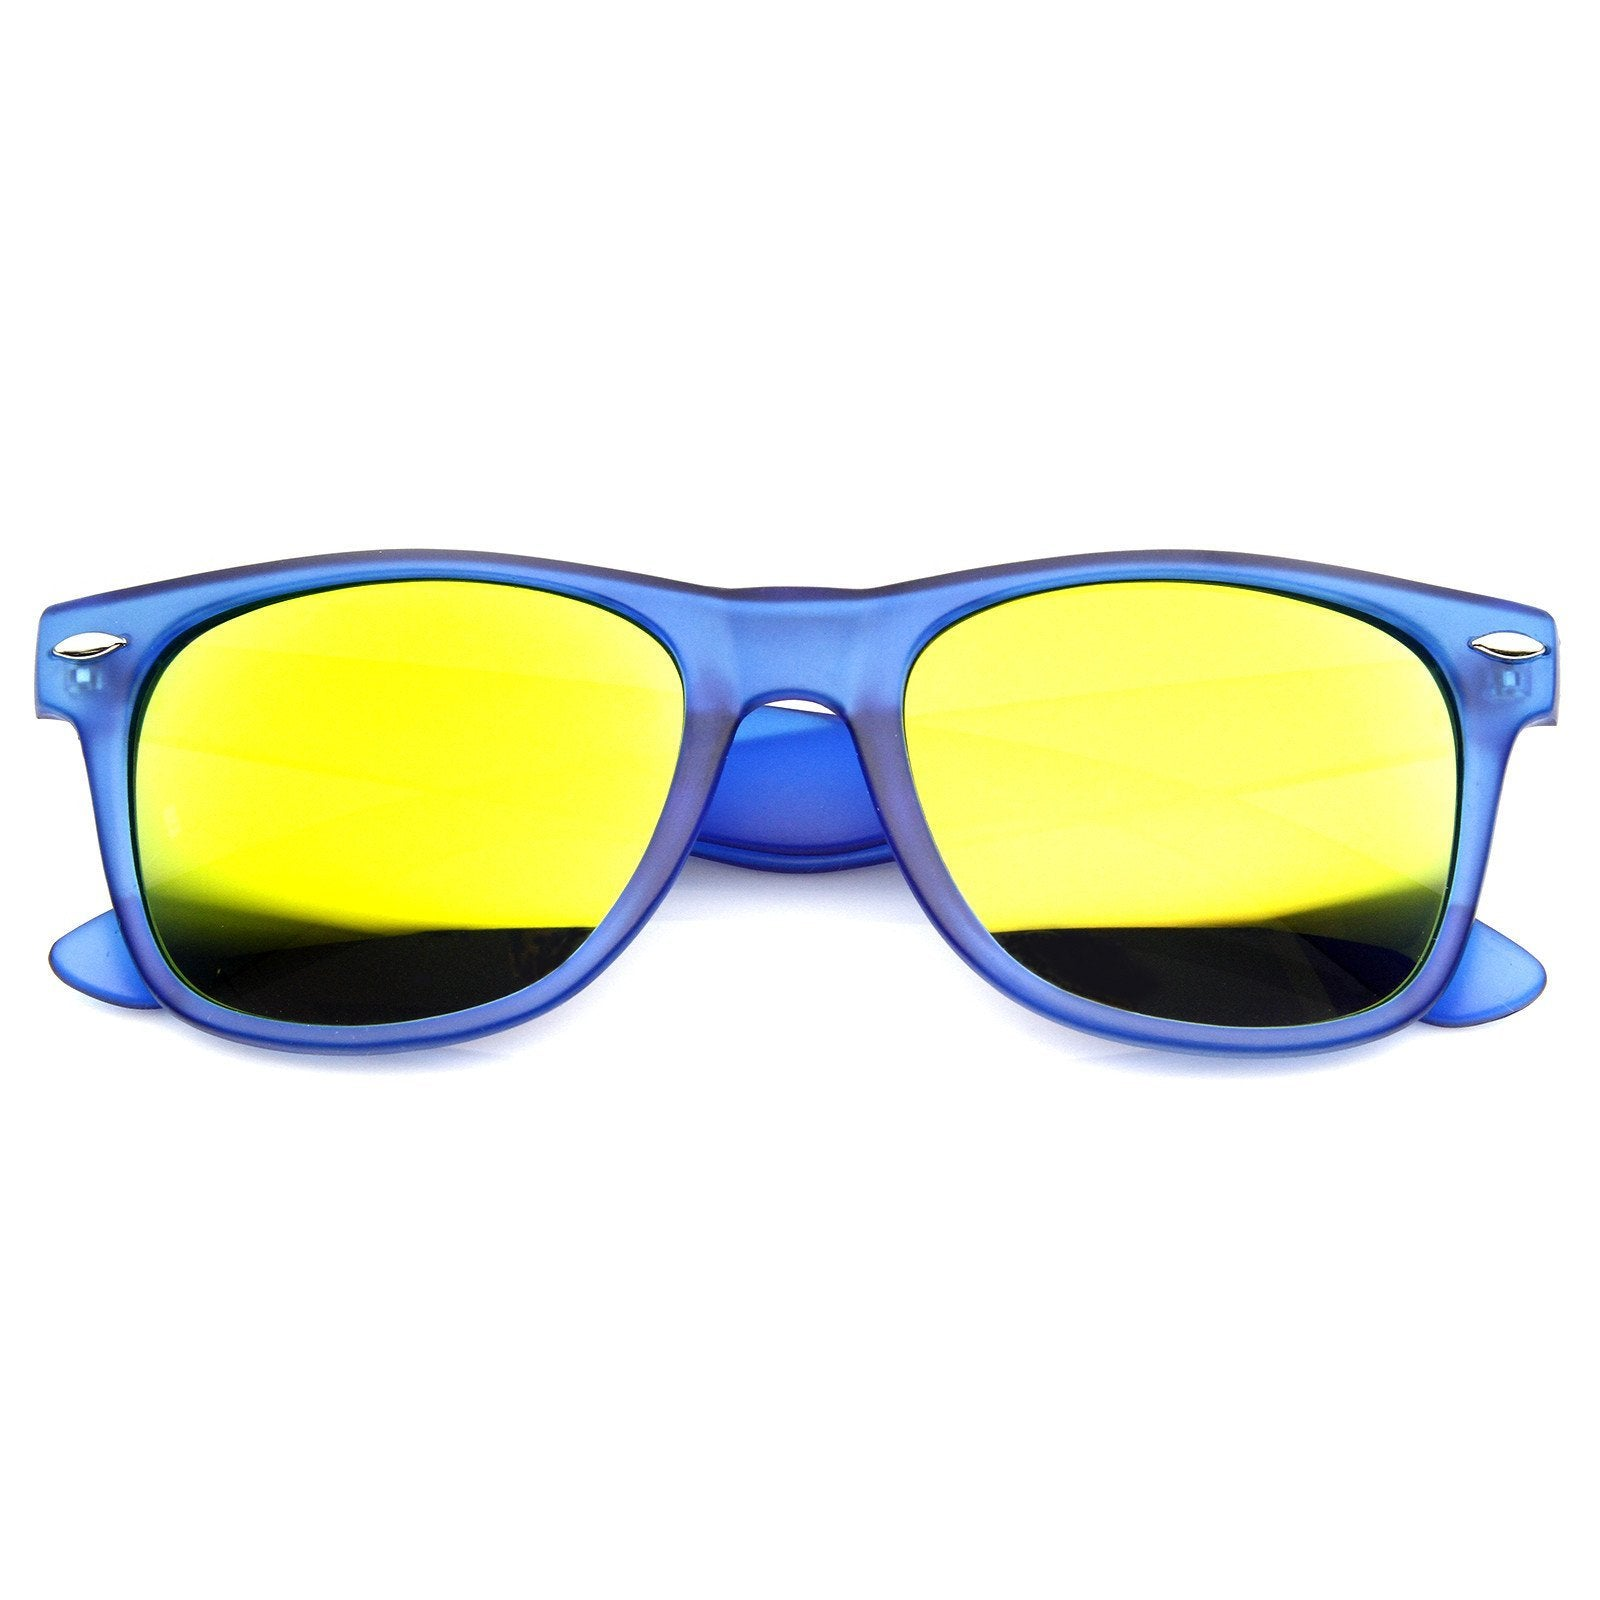 Super Bright Color Mirrored Lens Horned Rim Sunglasses 8128